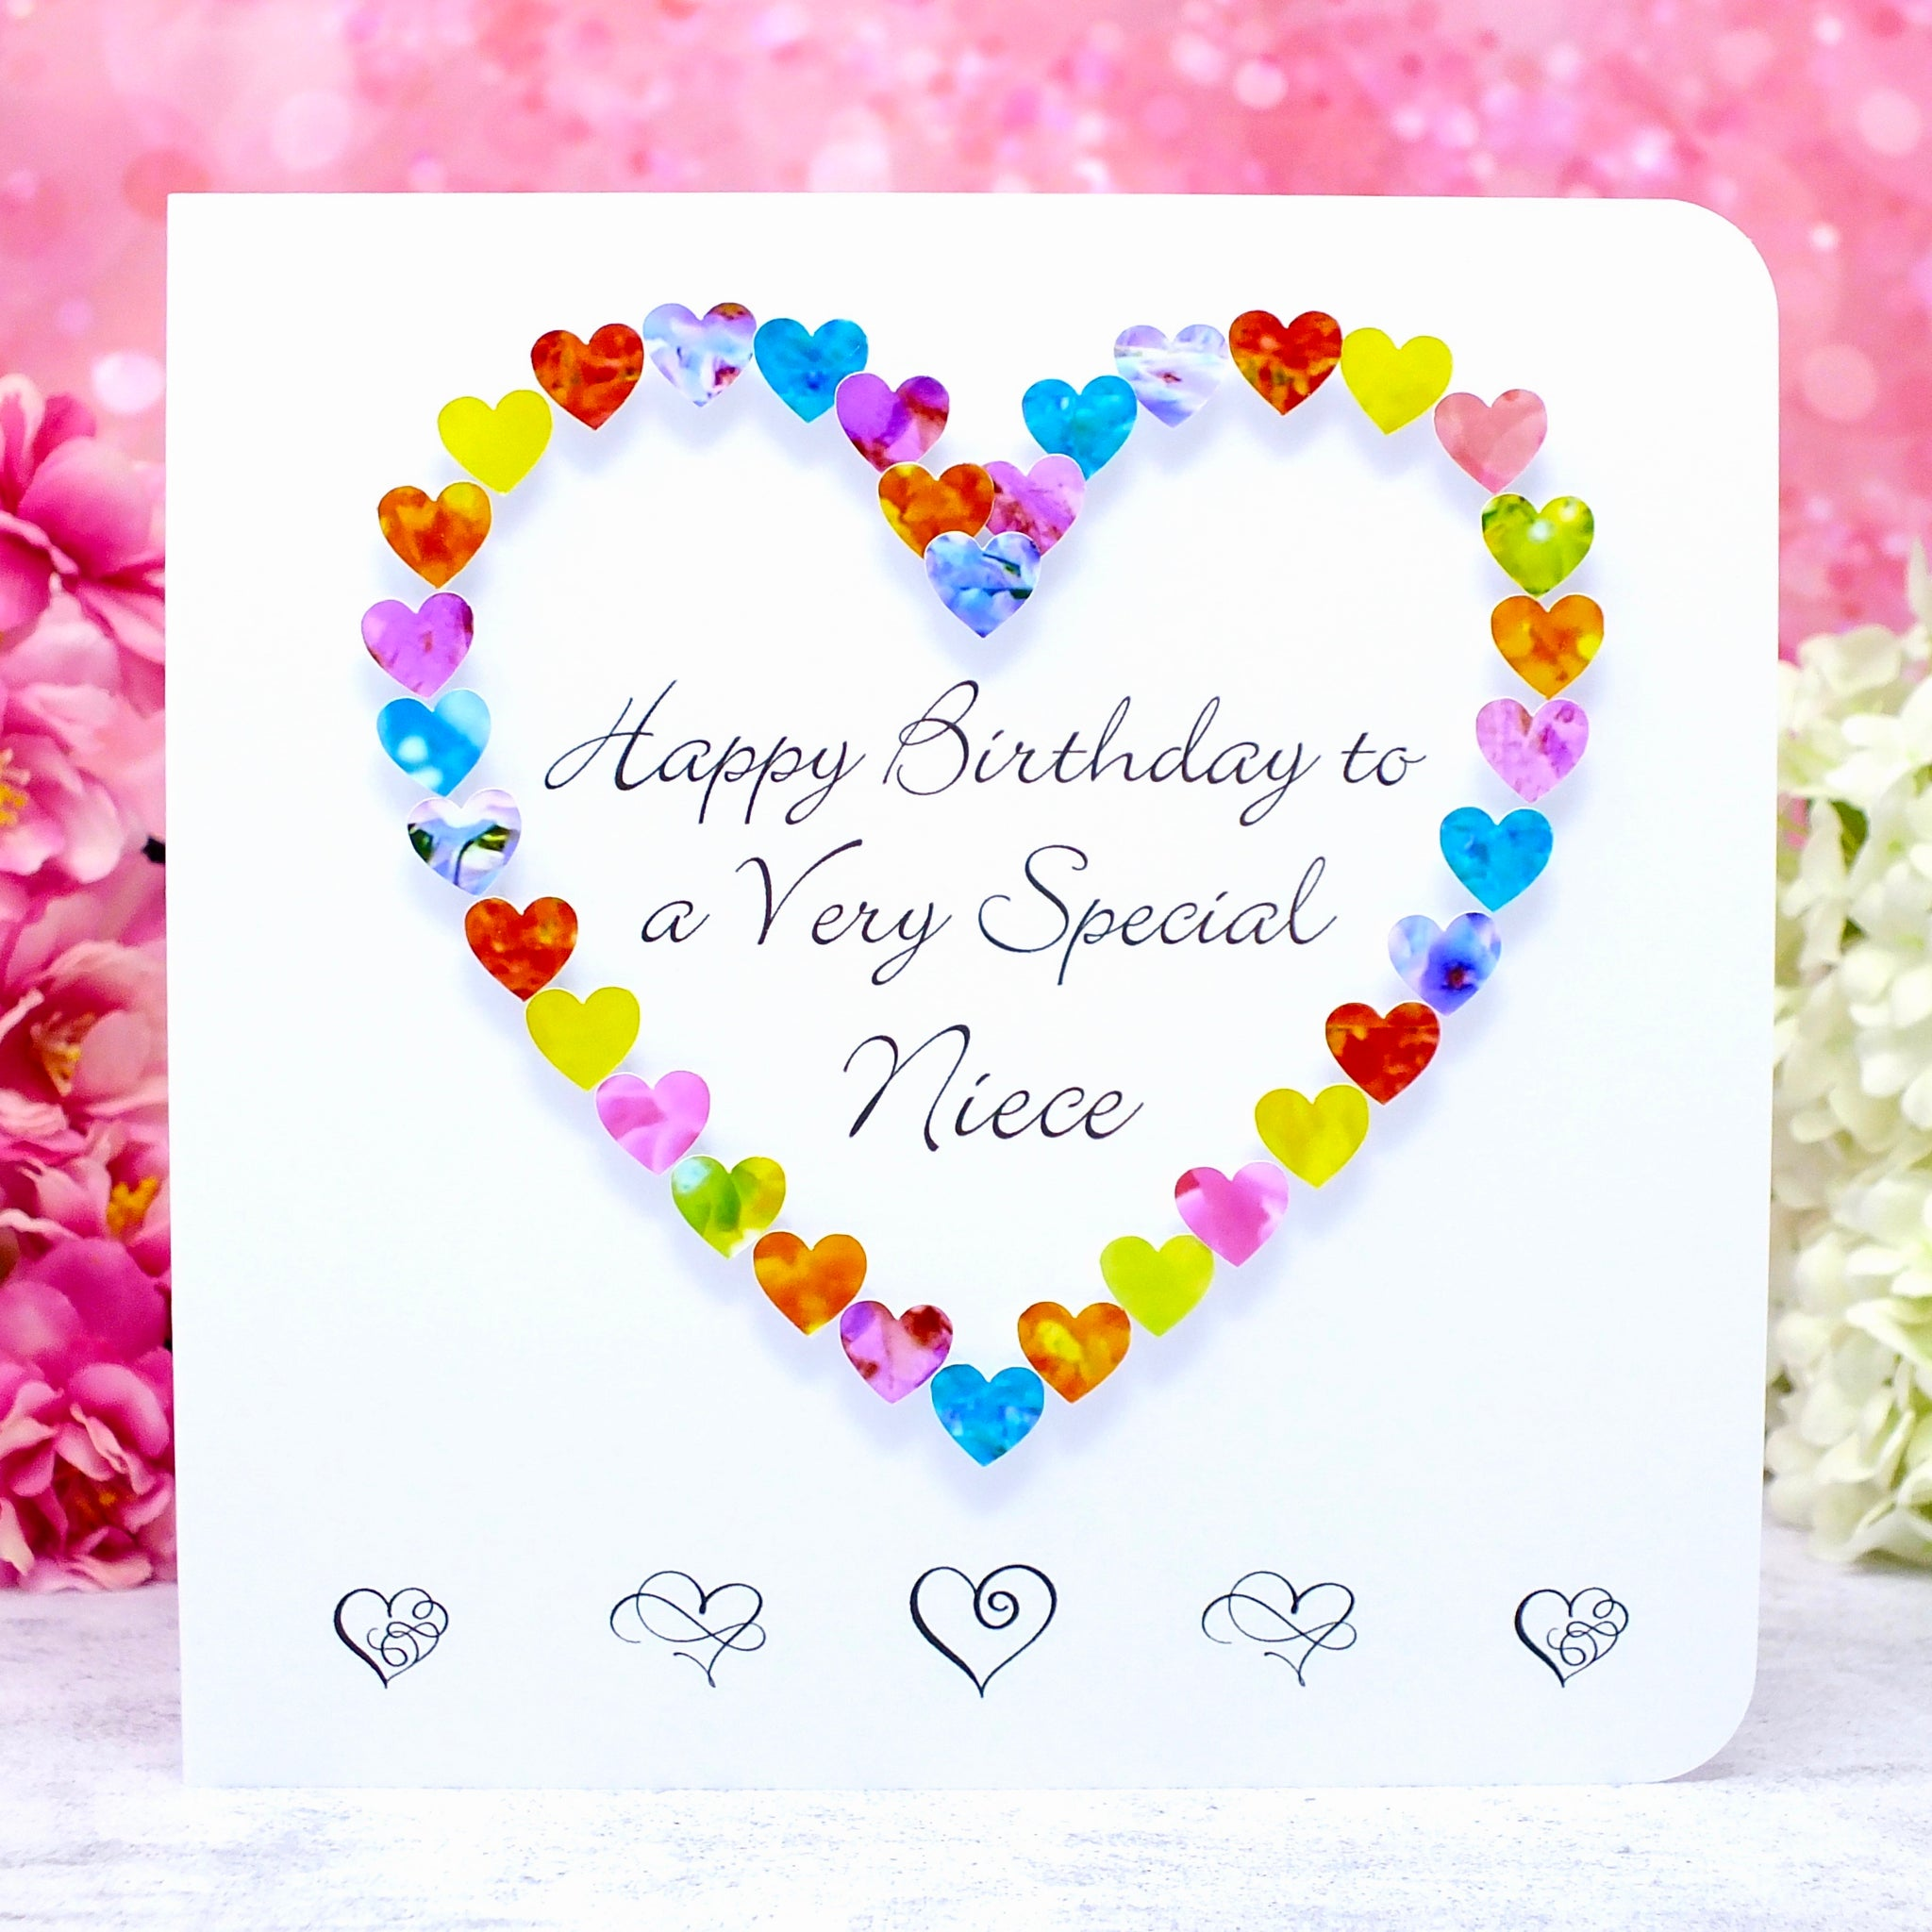 Birthday Card for Special Niece - Hearts